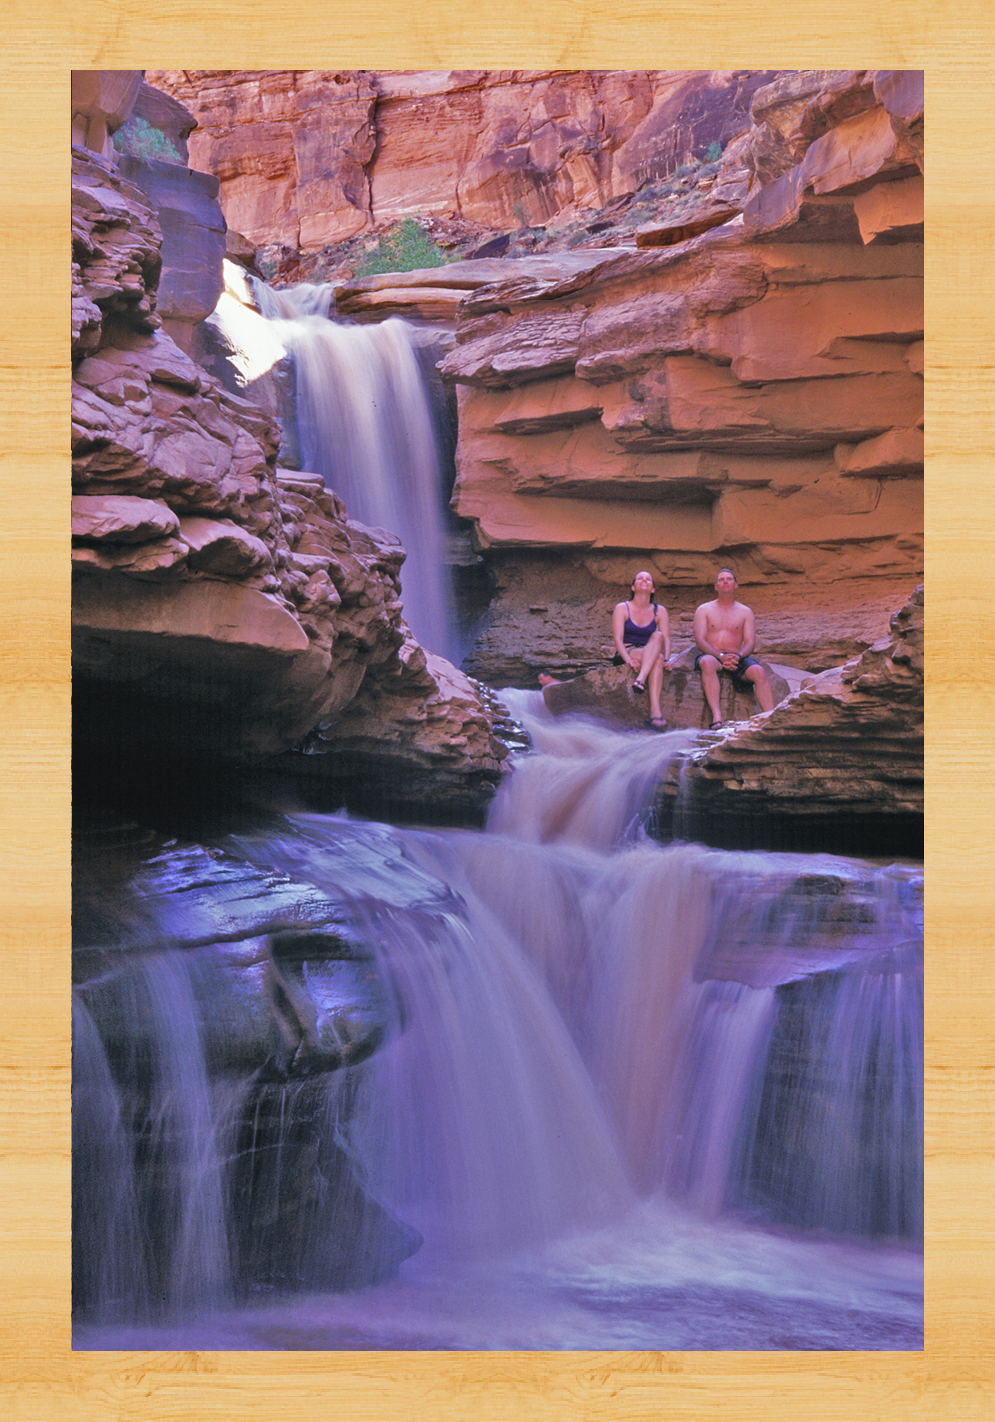 waterfalls in Cataract Canyon